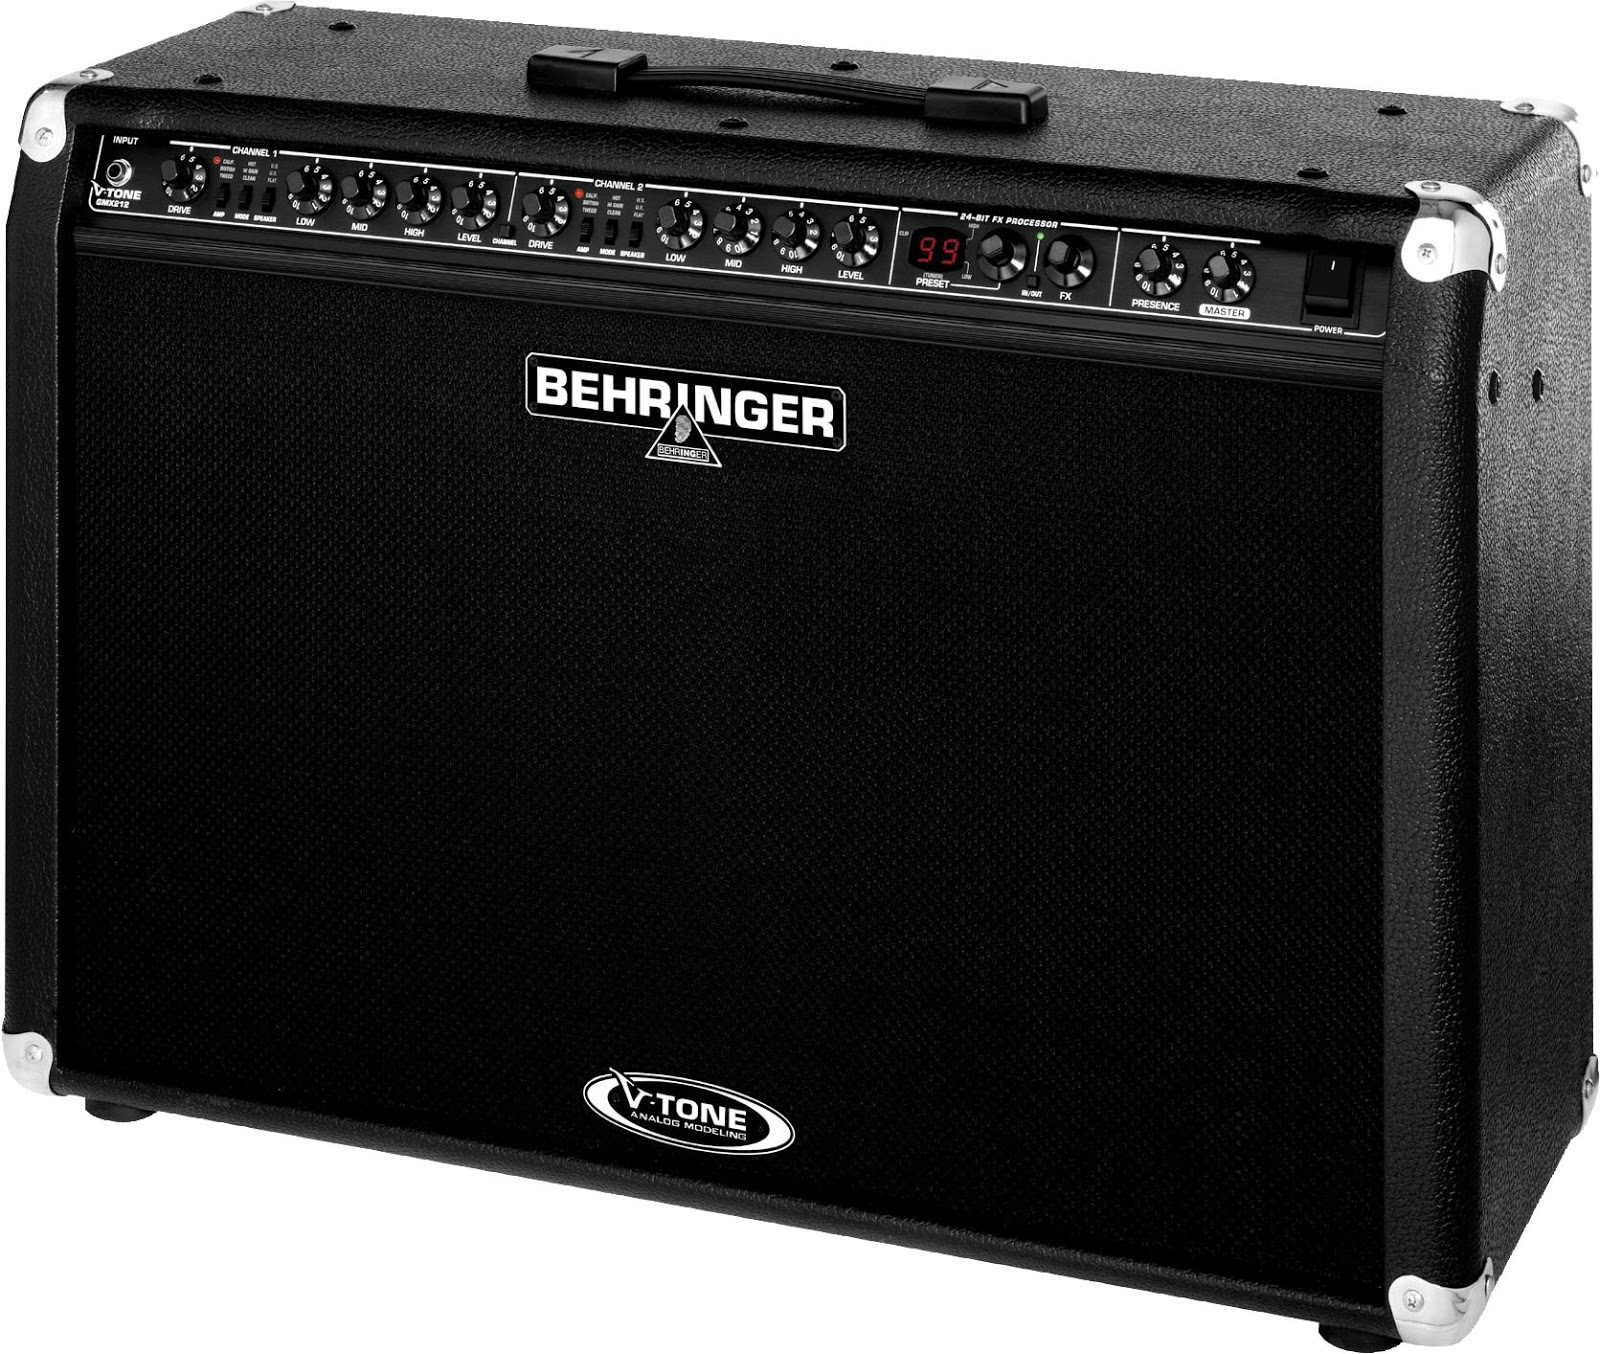 Behringer Gmx212 Sevice Mods Guitar Dreamer Strat Squire Wire Diagram A Month Ago I Bought This Gmx 212 Electric Combo Amplifier Used It Was Really Cheap Around 120euros For 2 X 12 With